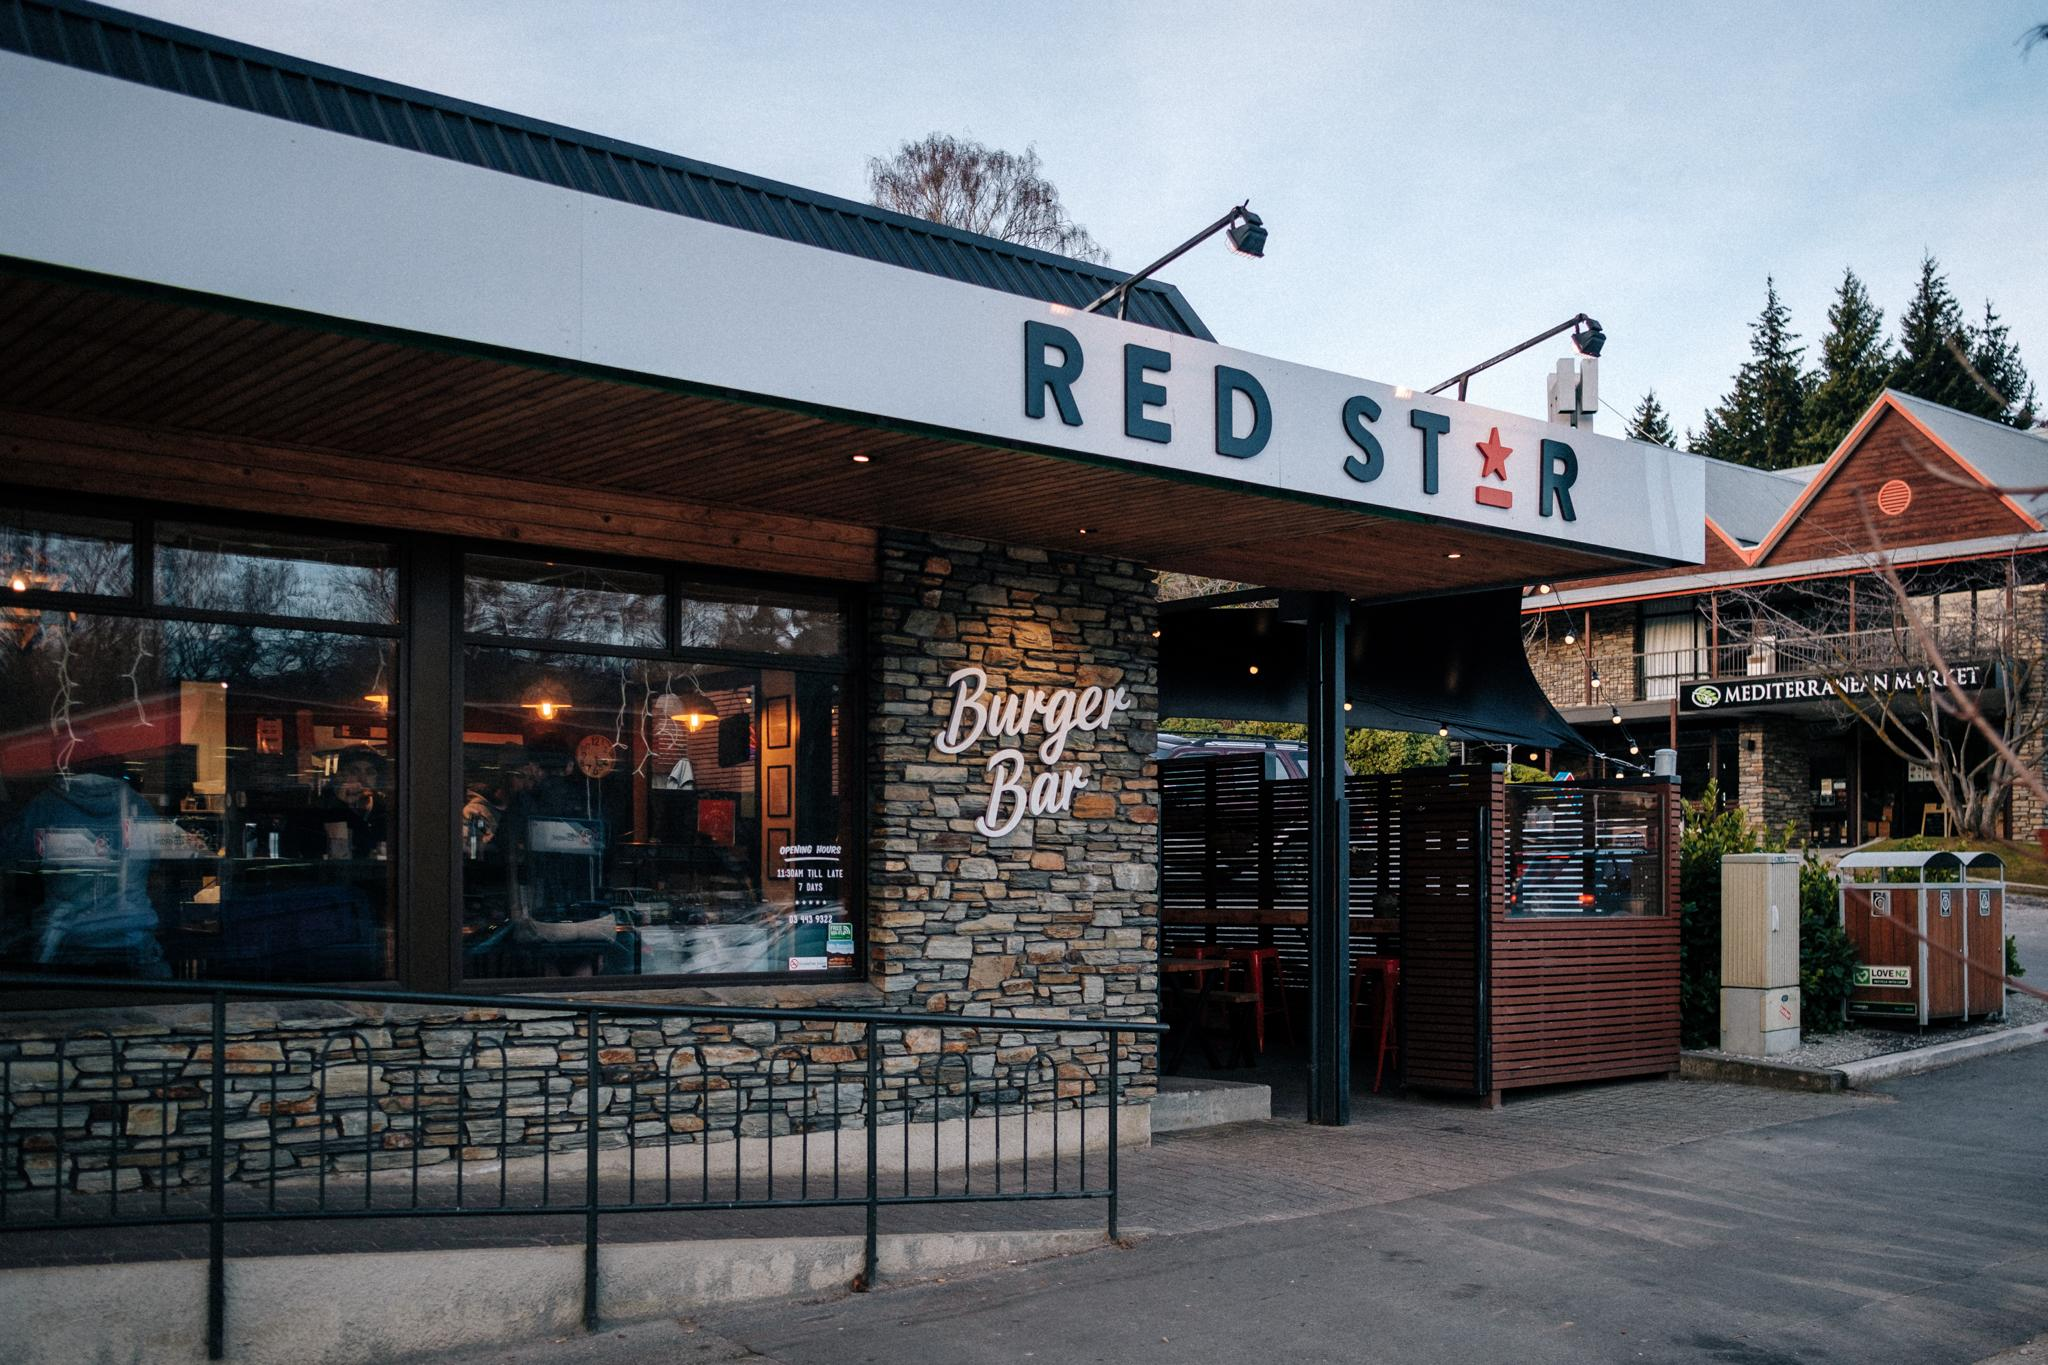 Red Star Burger Bar